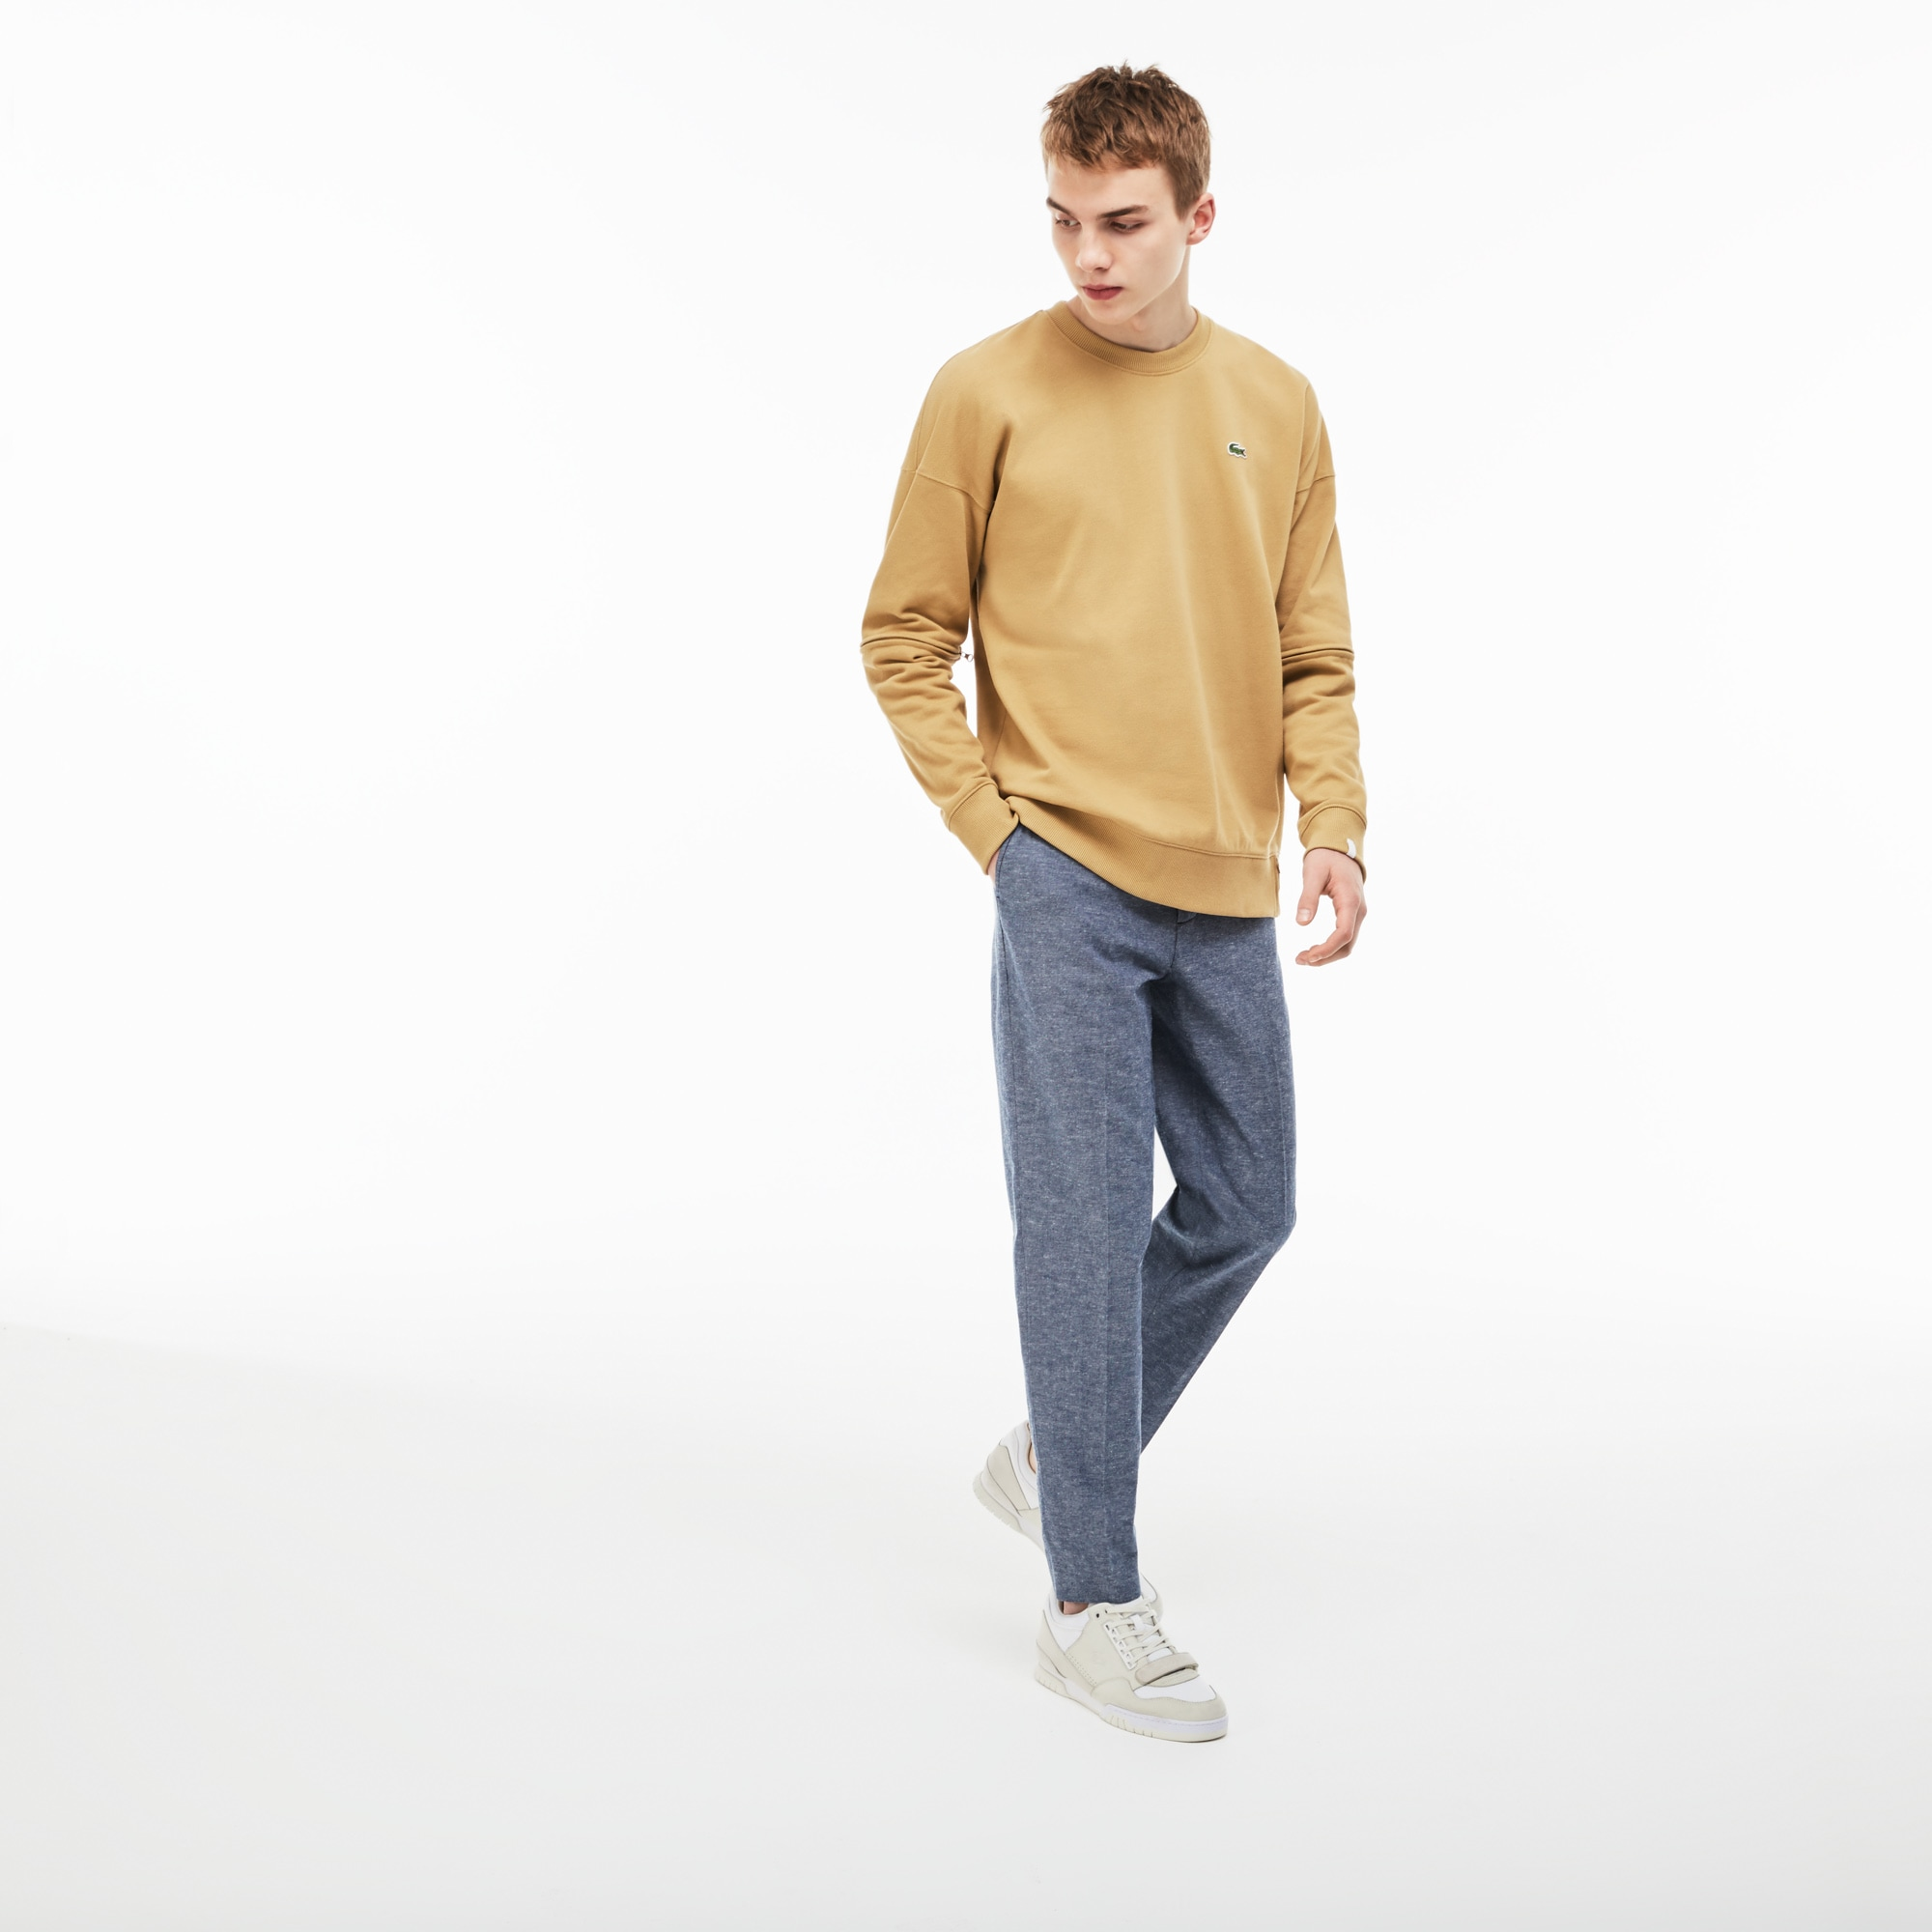 Lacoste LIVE-chino heren chambray geplooid